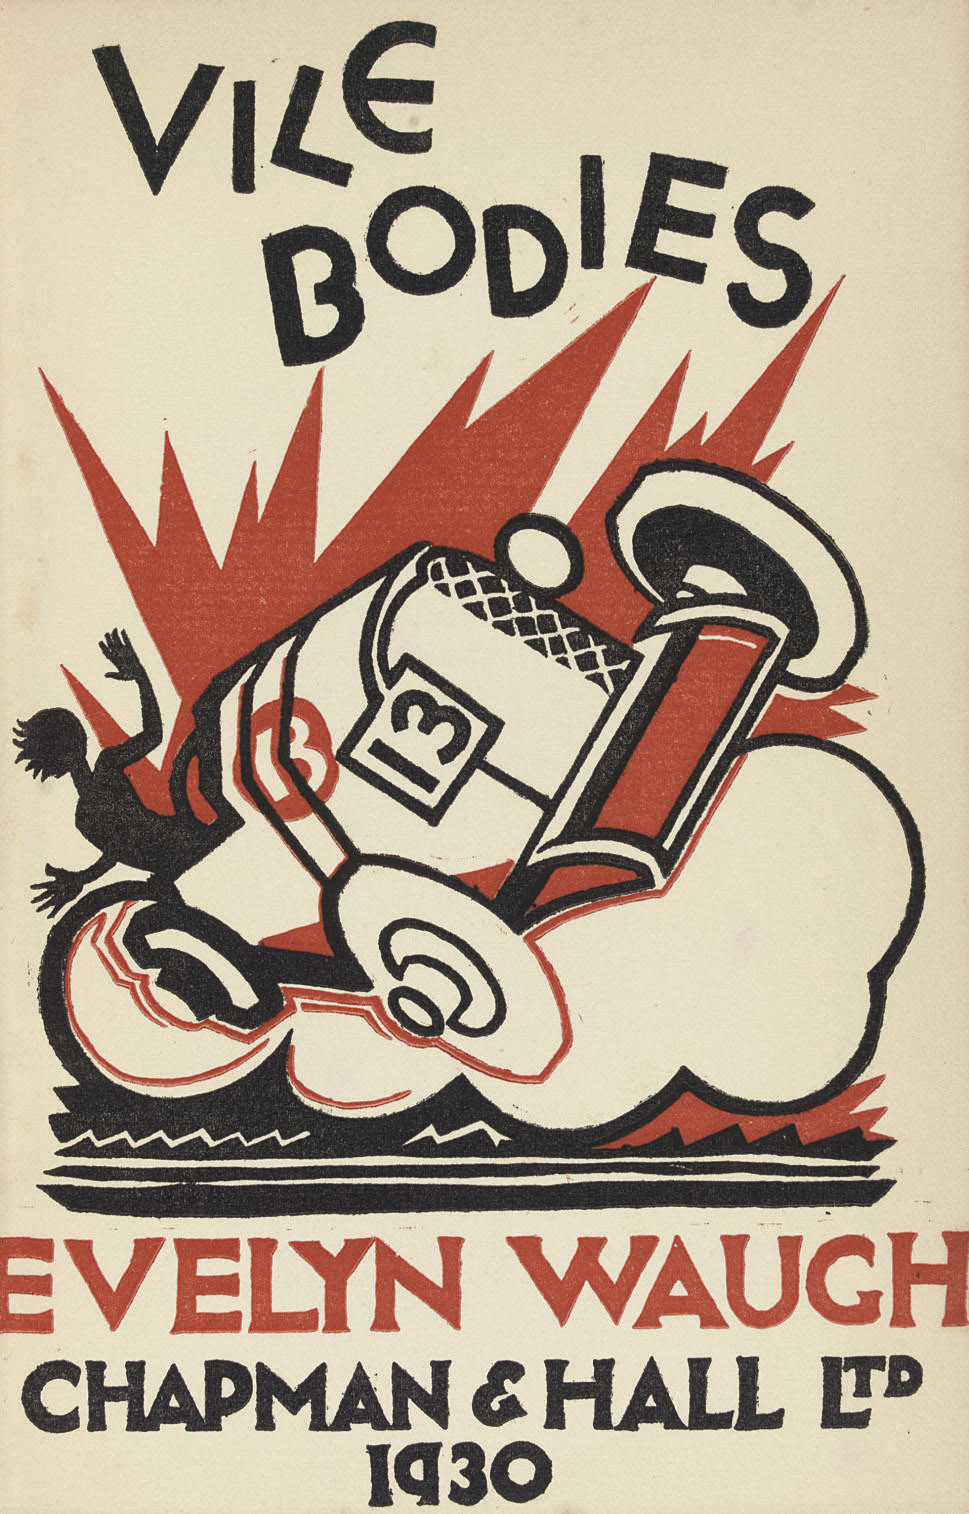 WAUGH, Evelyn (1903-66).  Vile Bodies. London: Chapman & Hall, 1930. 8° (187 x 129mm). Half title, title in red and black (very light marginal browning). Original cloth, lettered in gilt (head and tail of spine a little bumped), dust-jacket (head and tail of spine torn away, spine repaired on verso, upper extremities of dust-jacket a little creased). FIRST EDITION of Waugh's second novel.